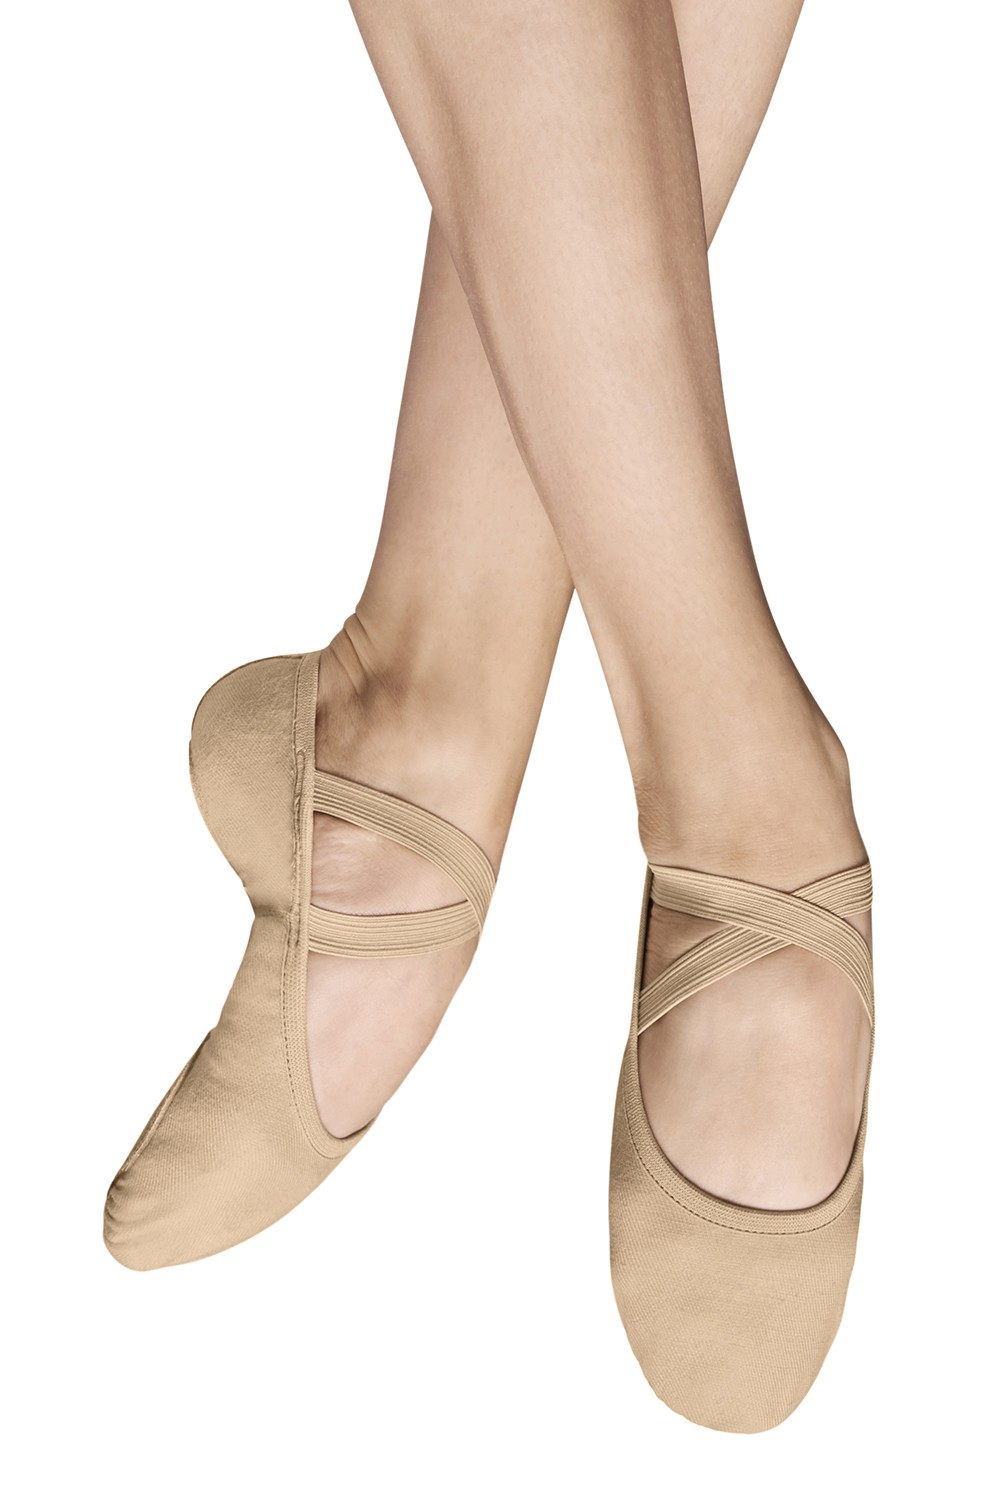 Performa - Men's Men's Ballet Shoes